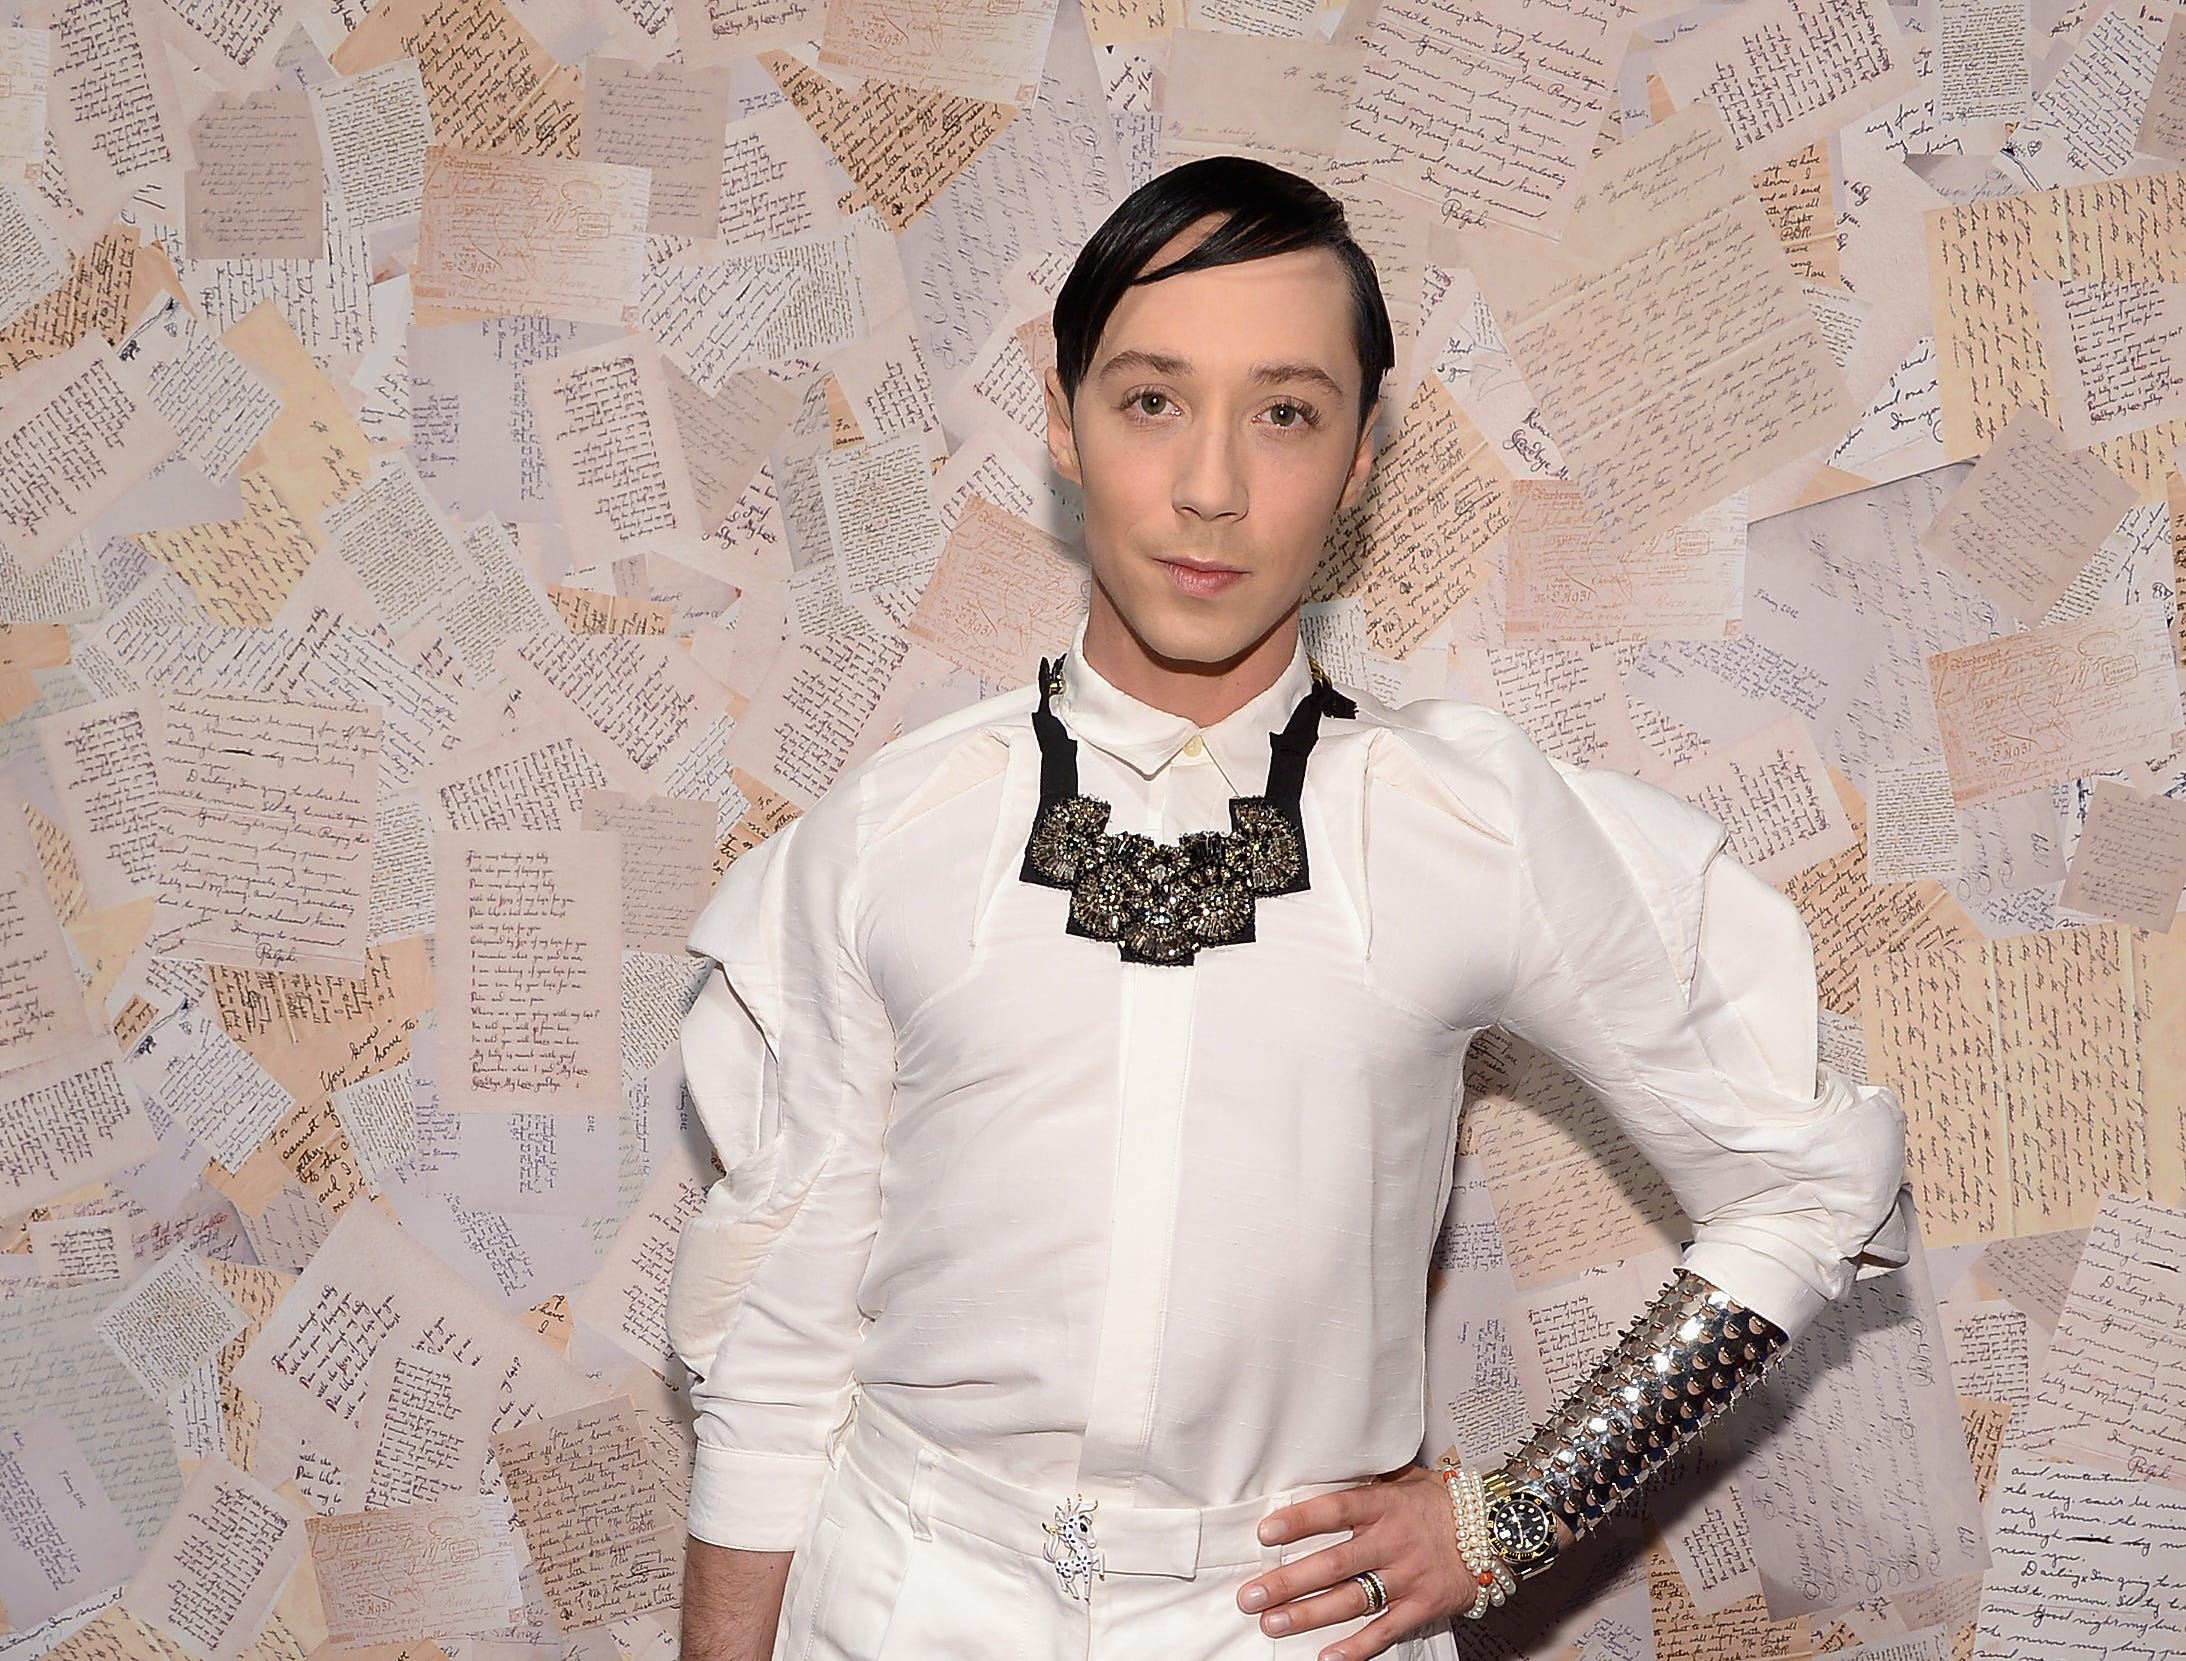 American figure skater Johnny Weir attends the alice + olivia by Stacey Bendet presentation during Mercedes-Benz Fashion Week Spring 2014 on September 9, 2013 in New York City.